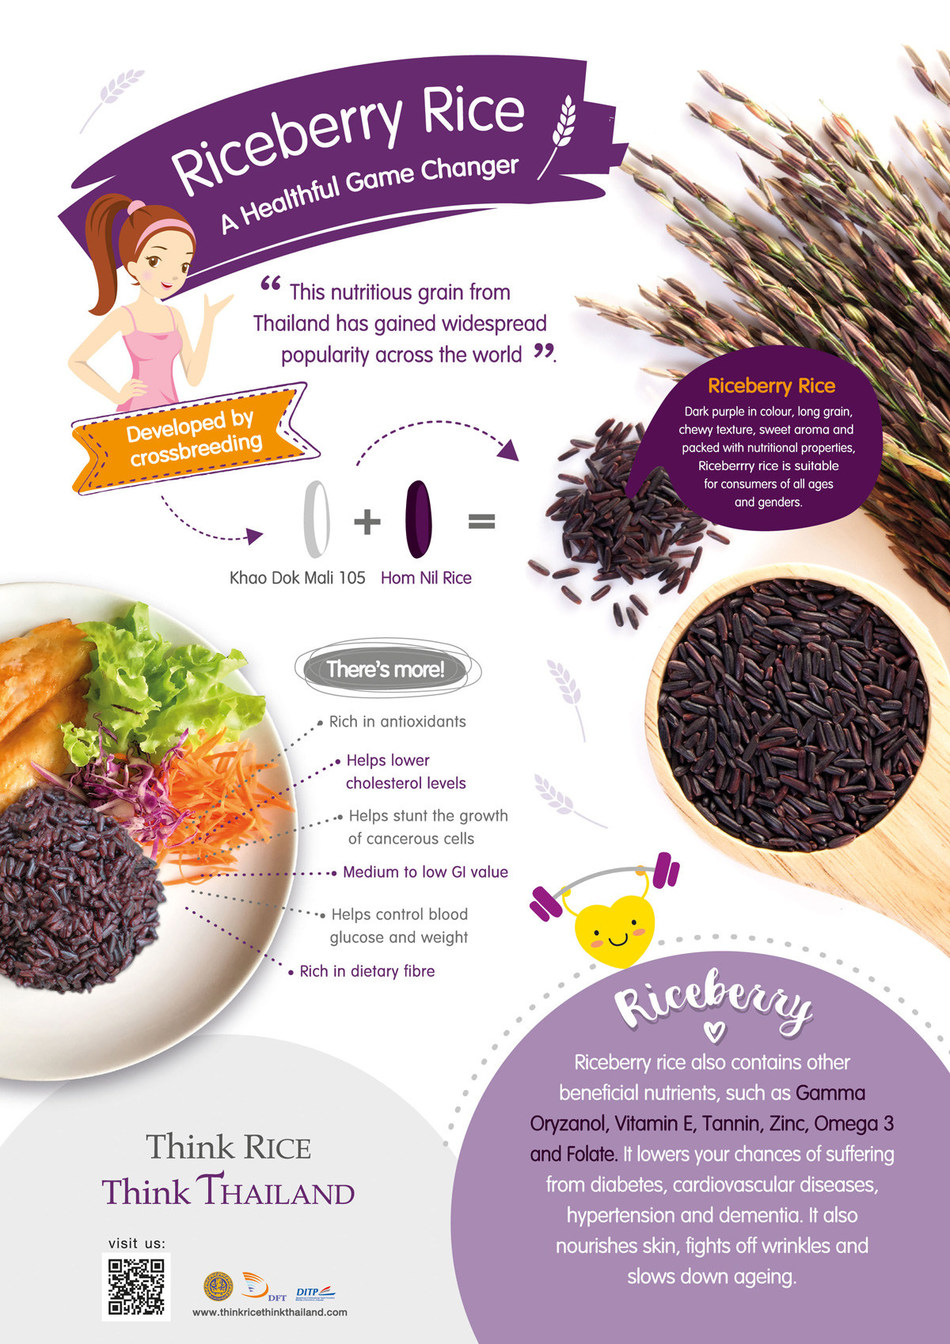 Riceberry Rice, A Healthful Game Changer from Thailand